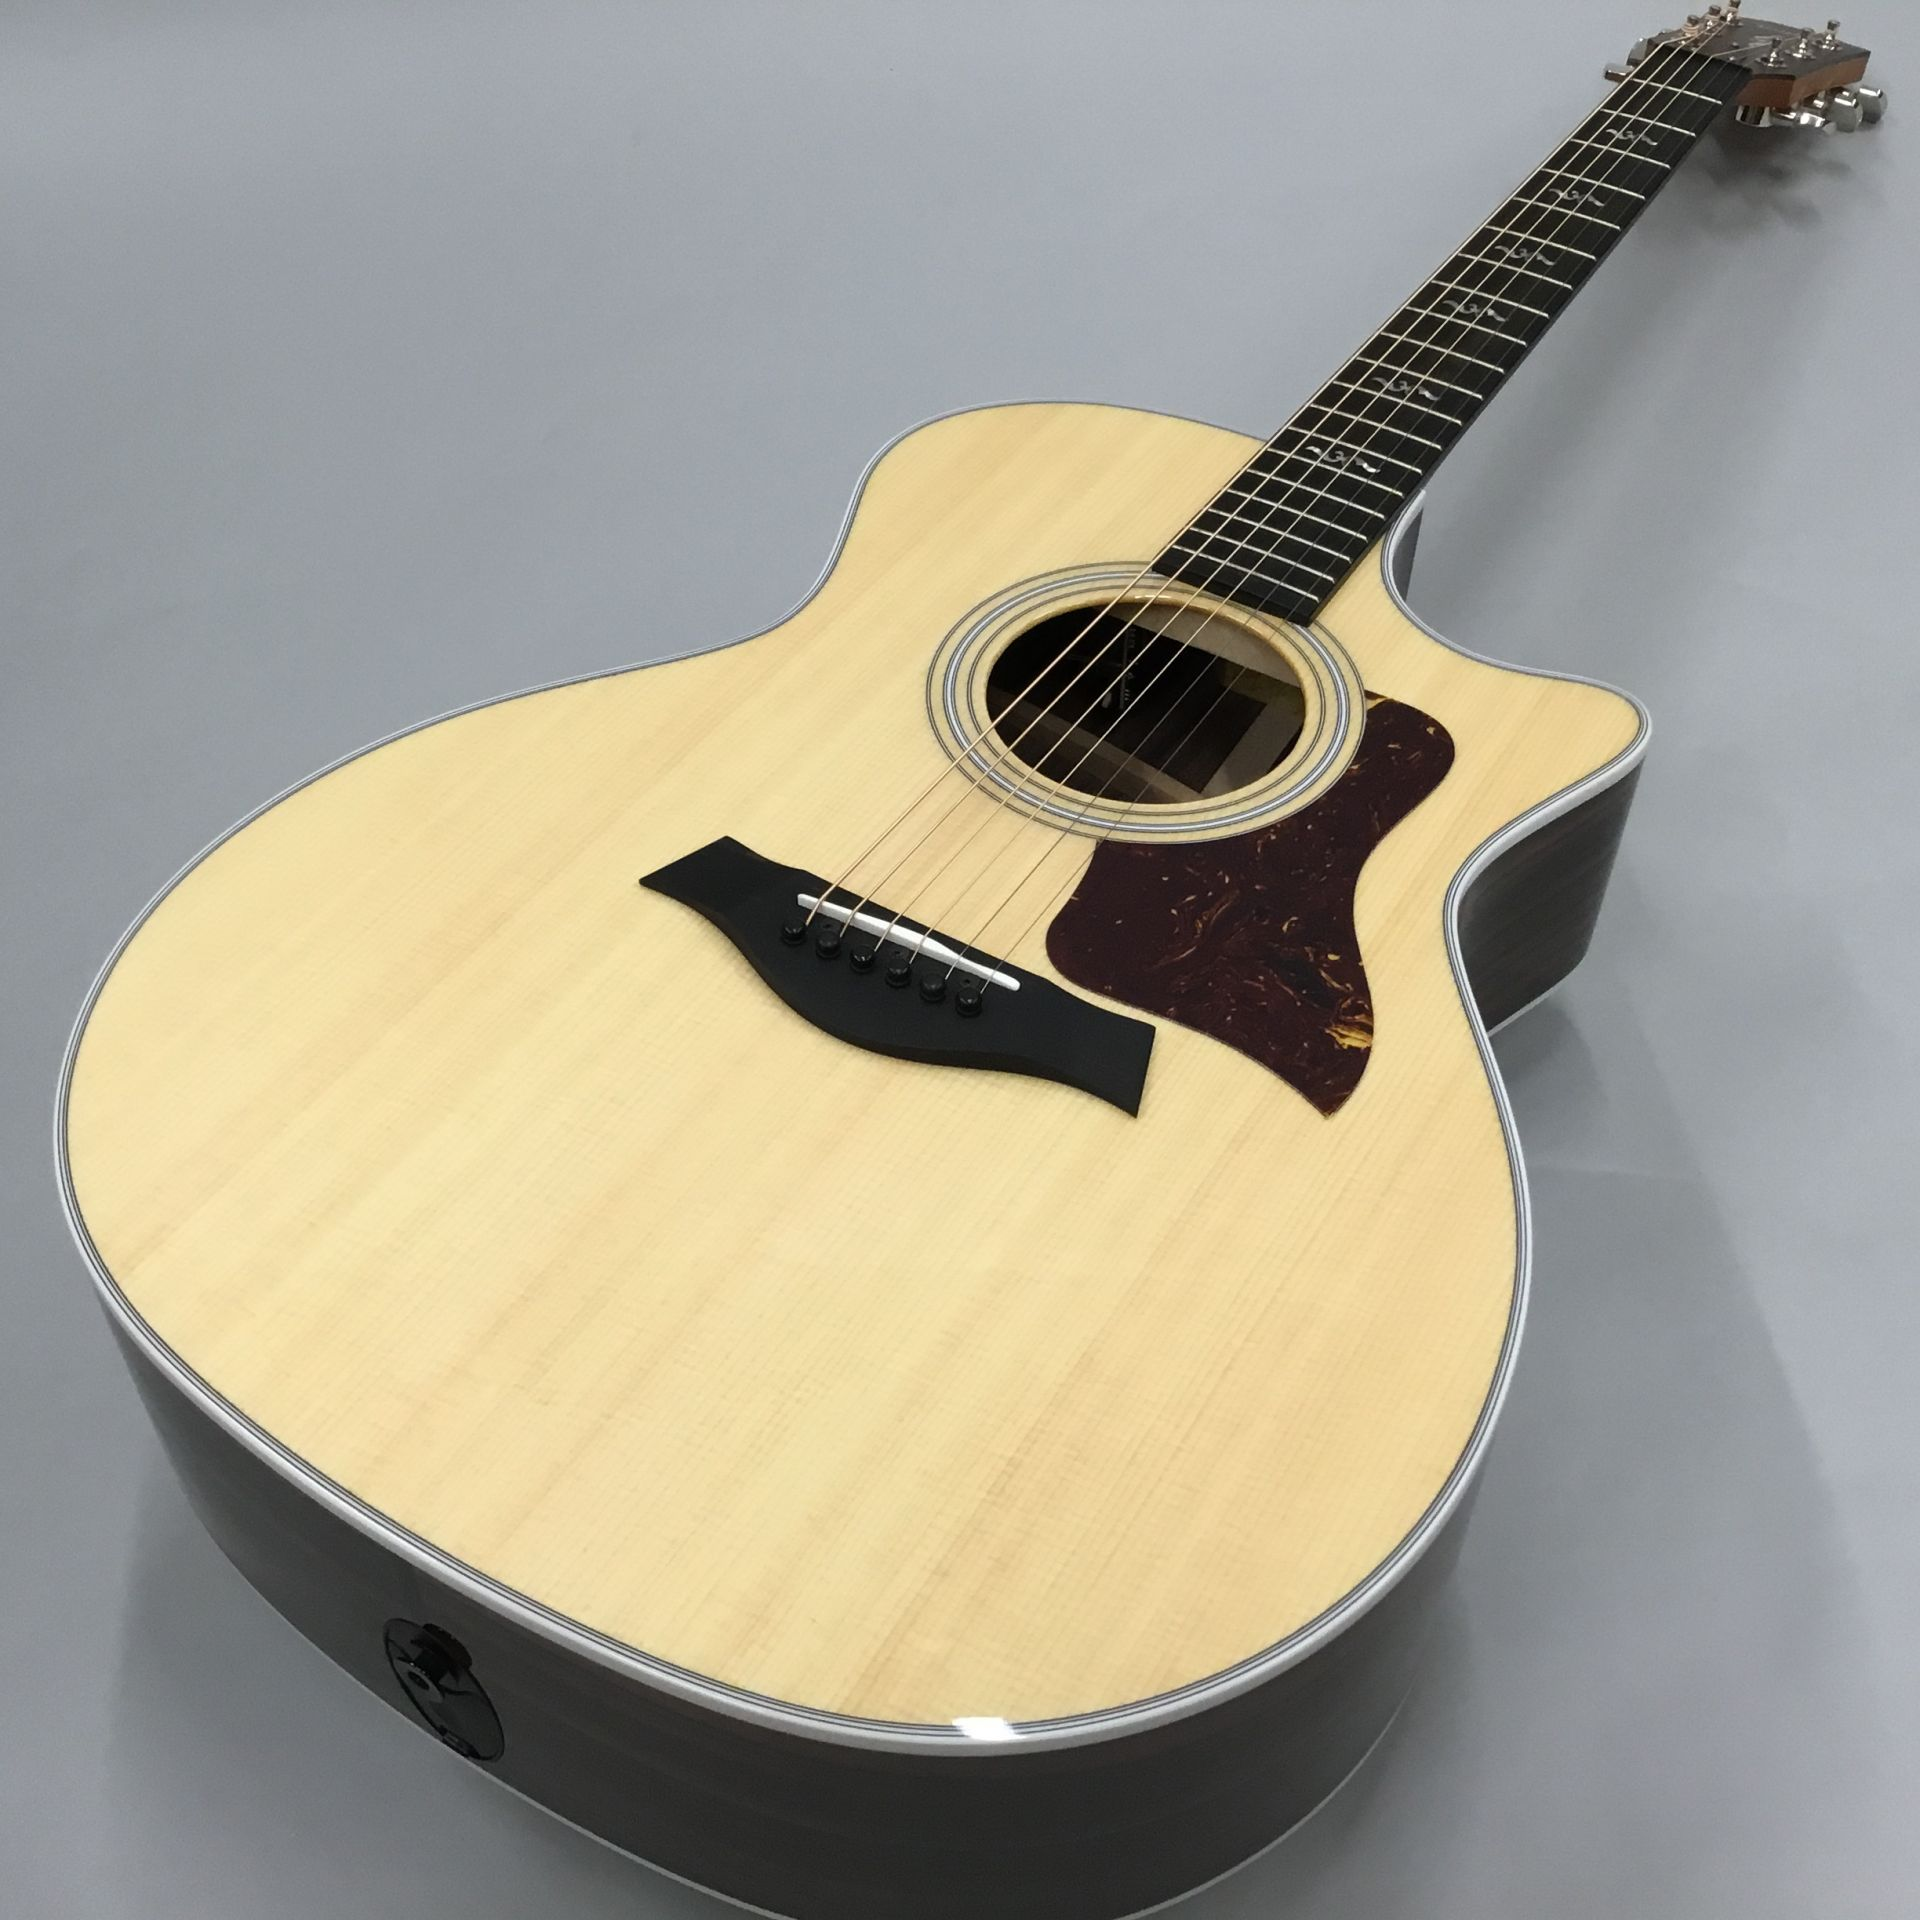 414ce Rosewood V-Classのボディトップ-アップ画像